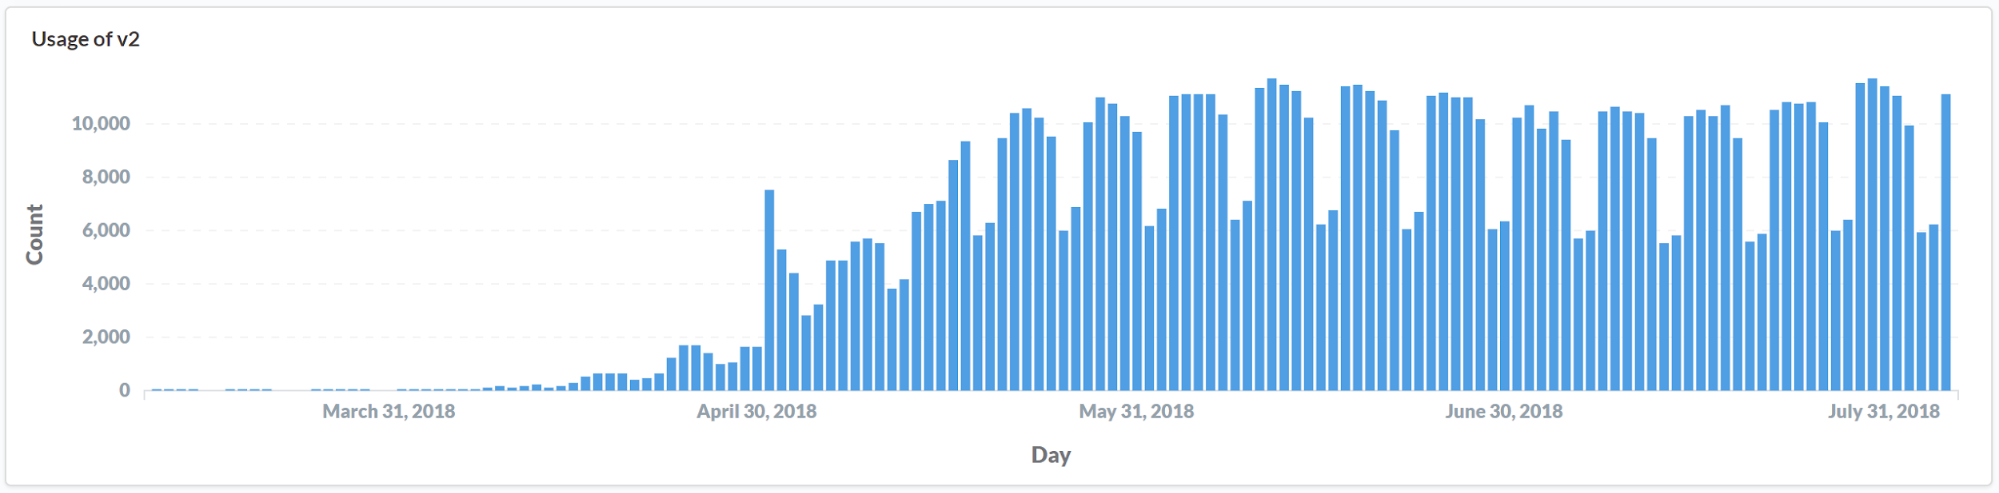 Image showing growth in use of Overleaf v2